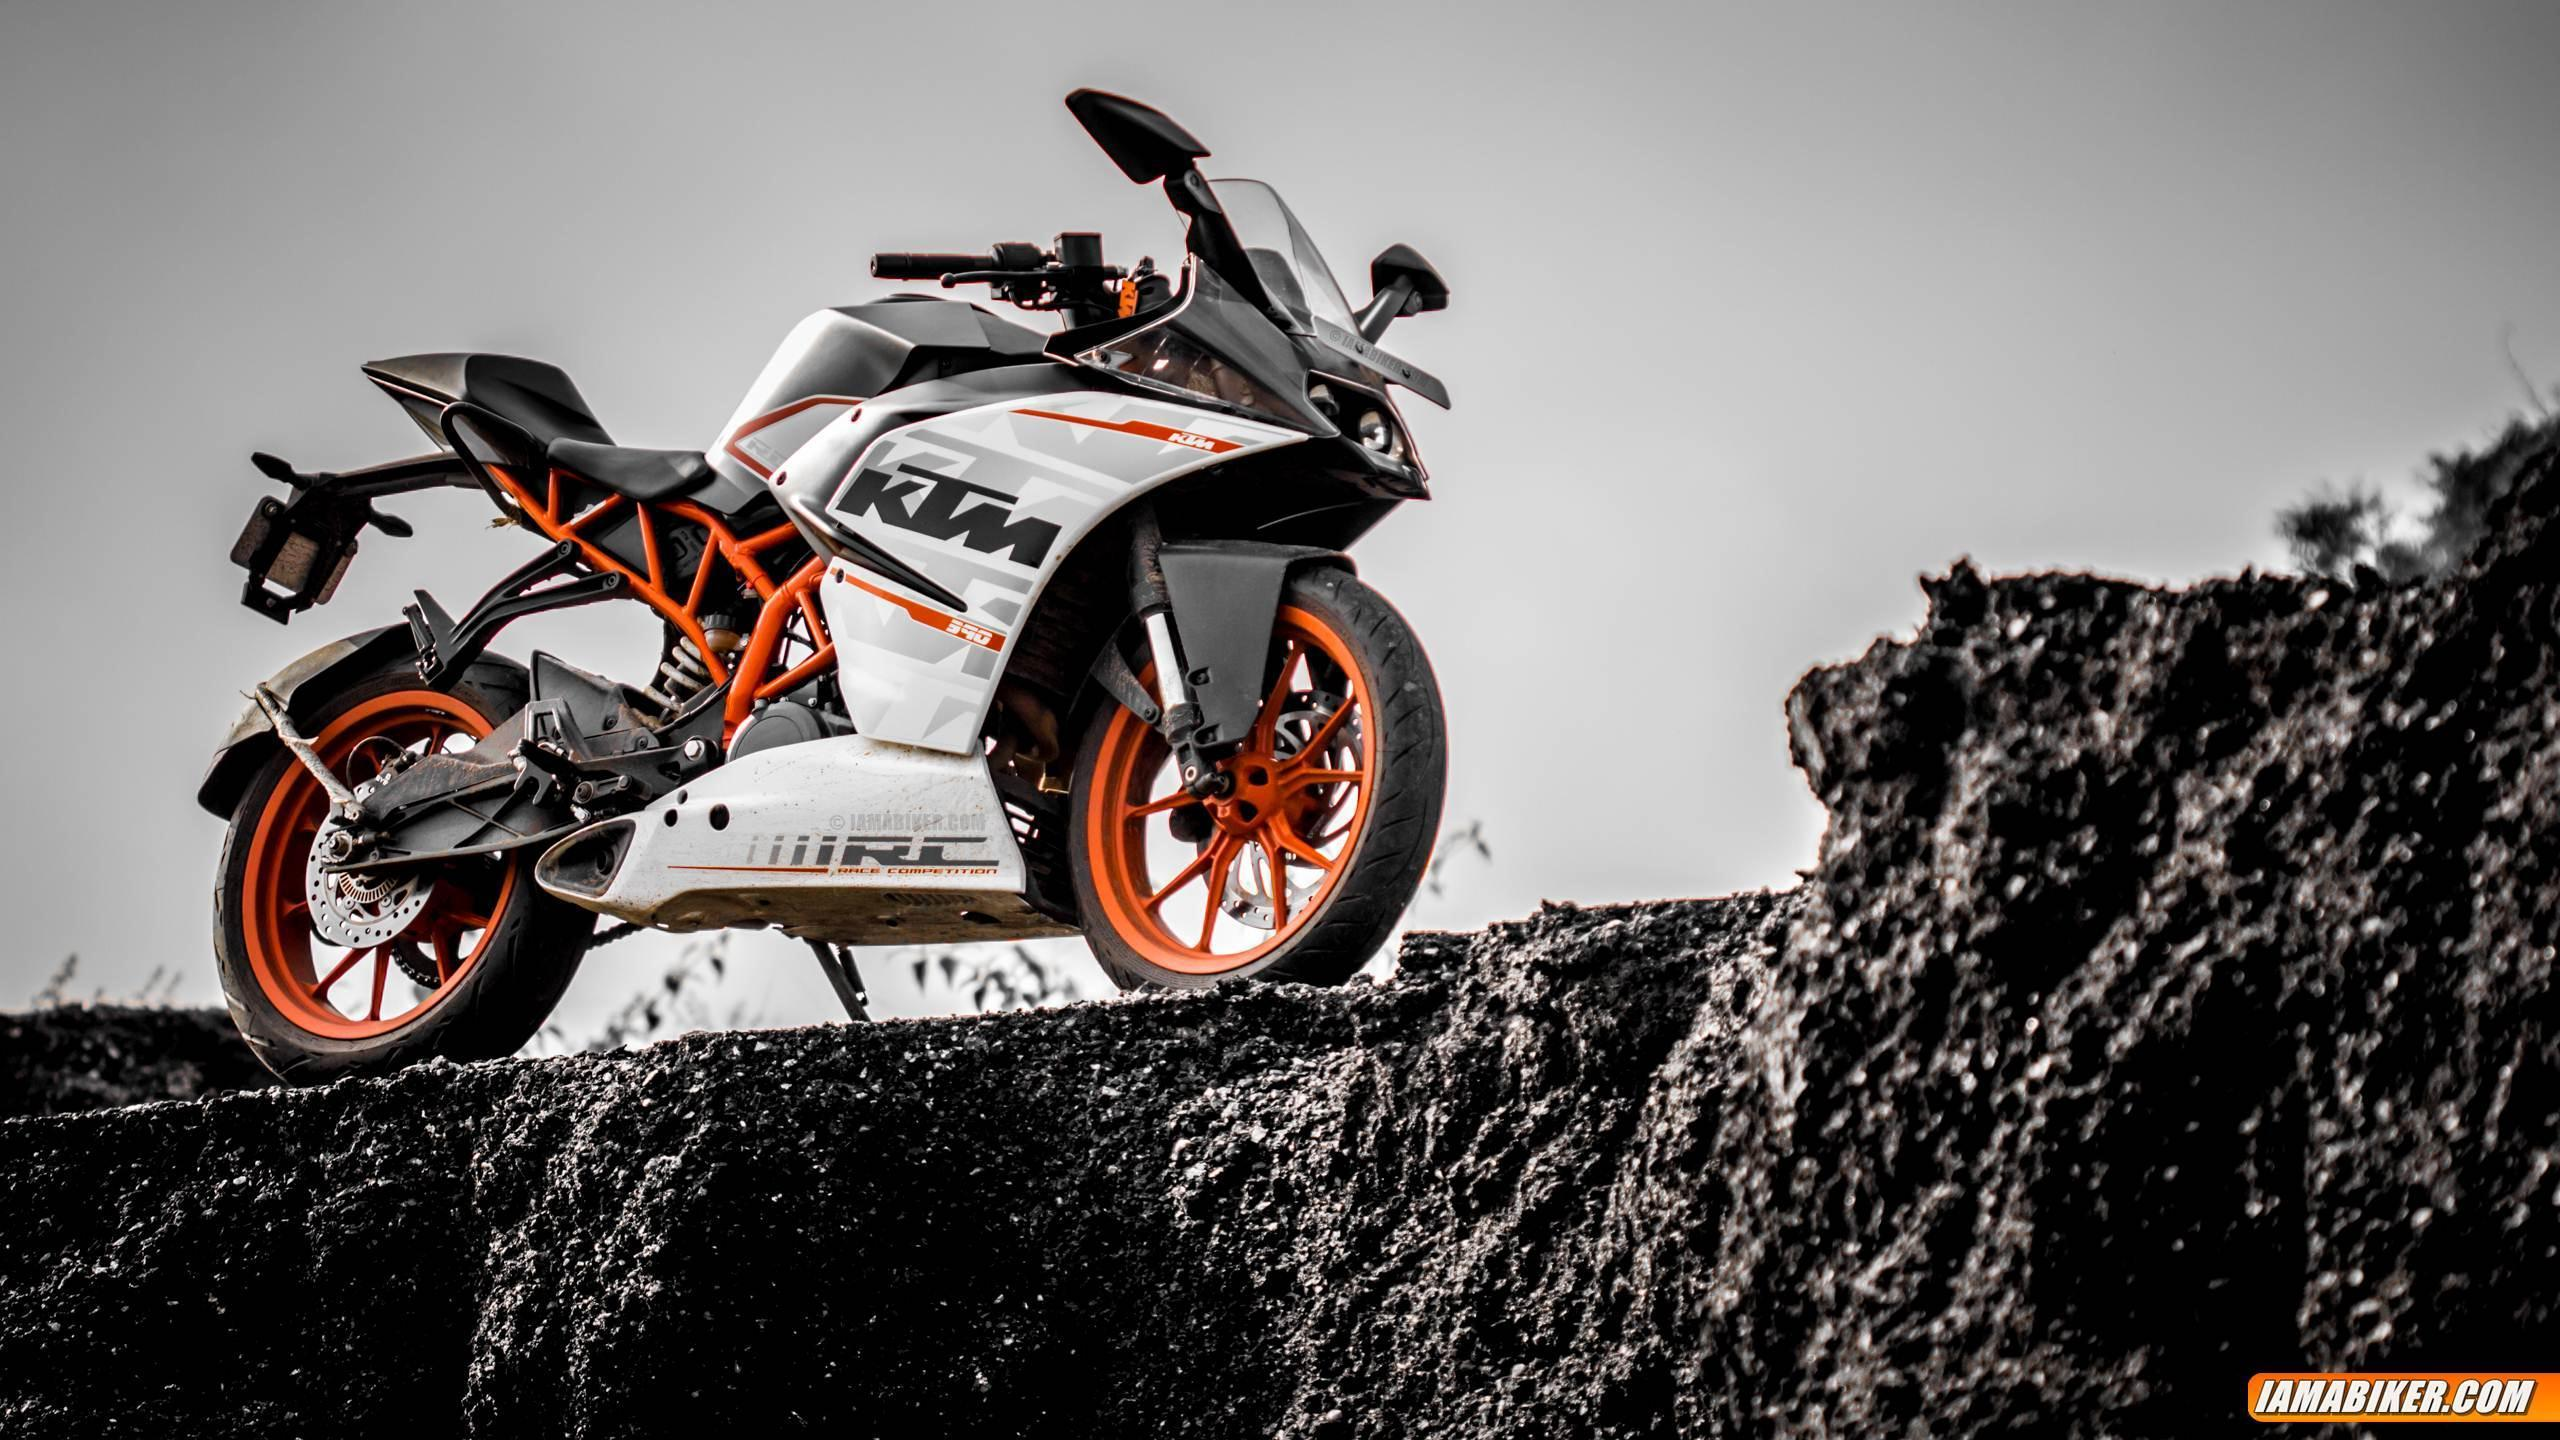 Ktm Wallpapers, Ktm Wallpapers and Pictures Collection